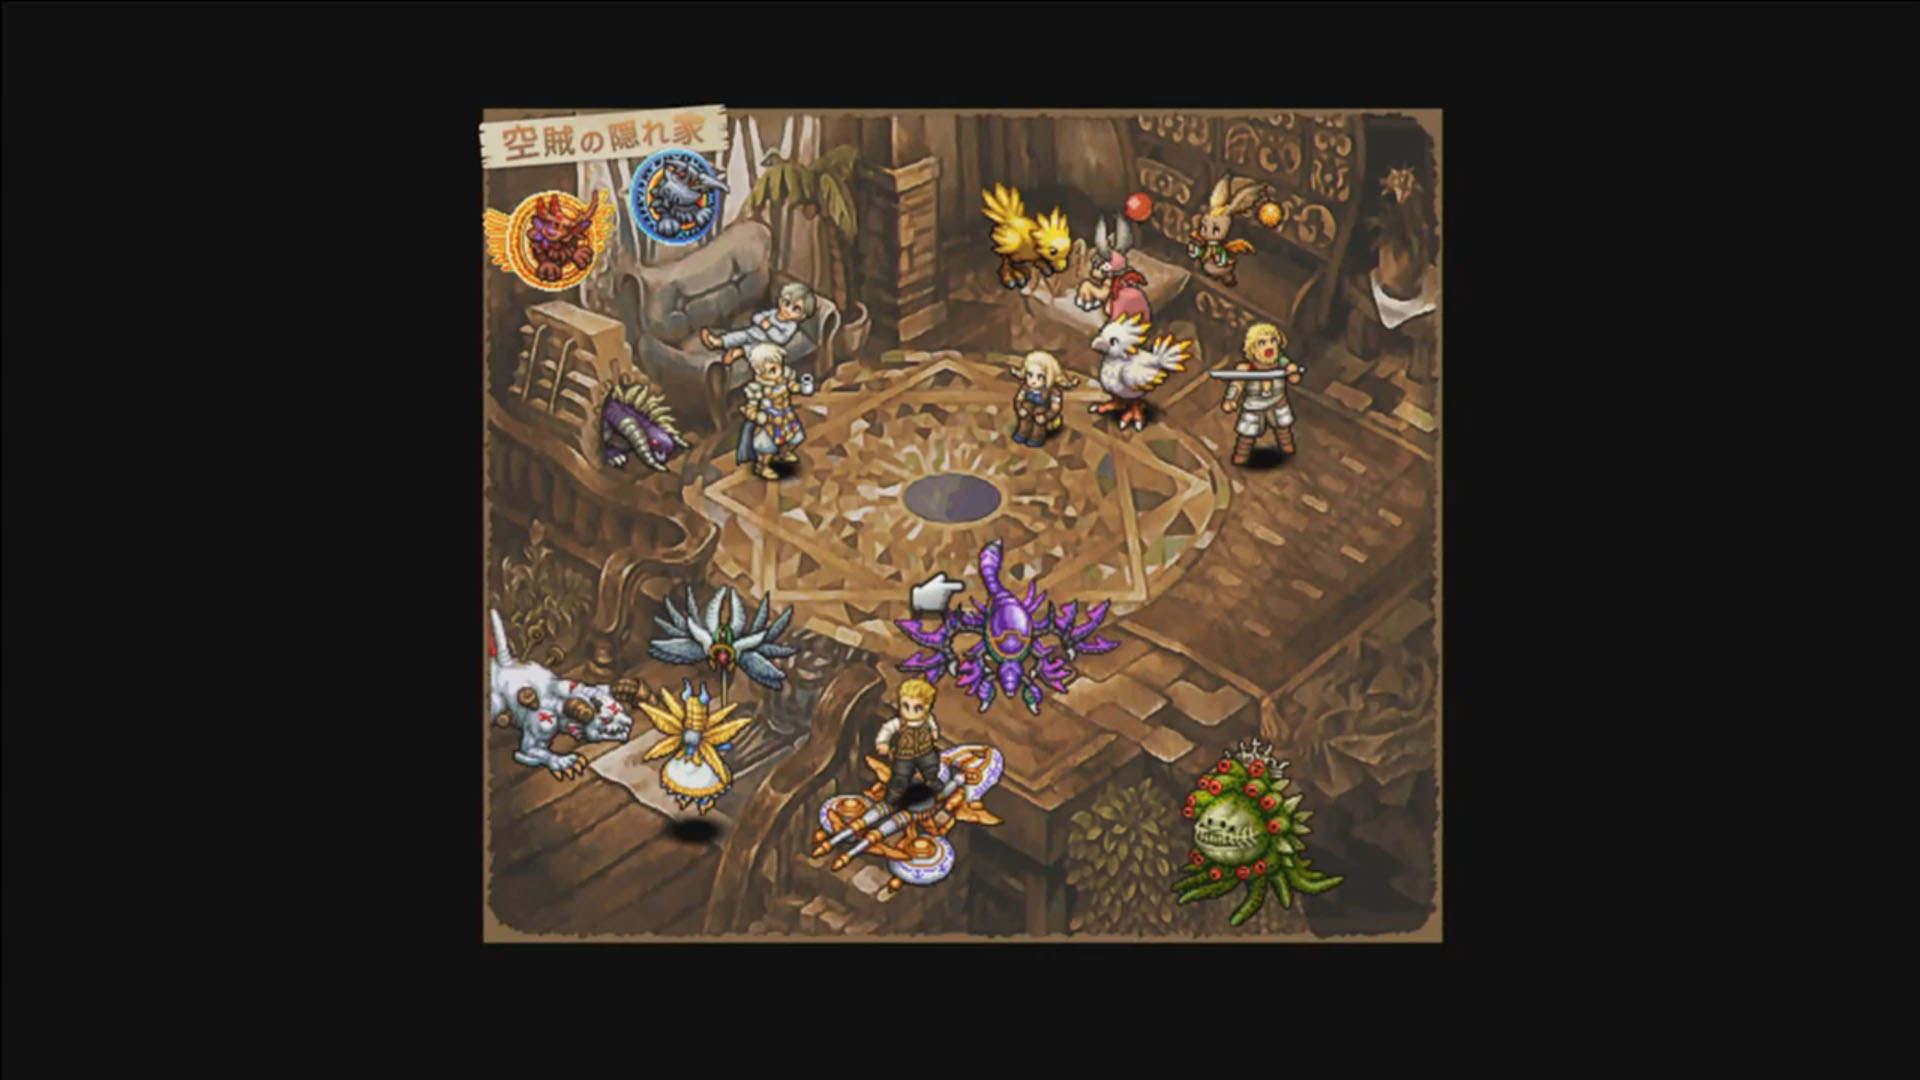 Final Fantasy Xii Final Fantasy Xii The Zodiac Age License Board